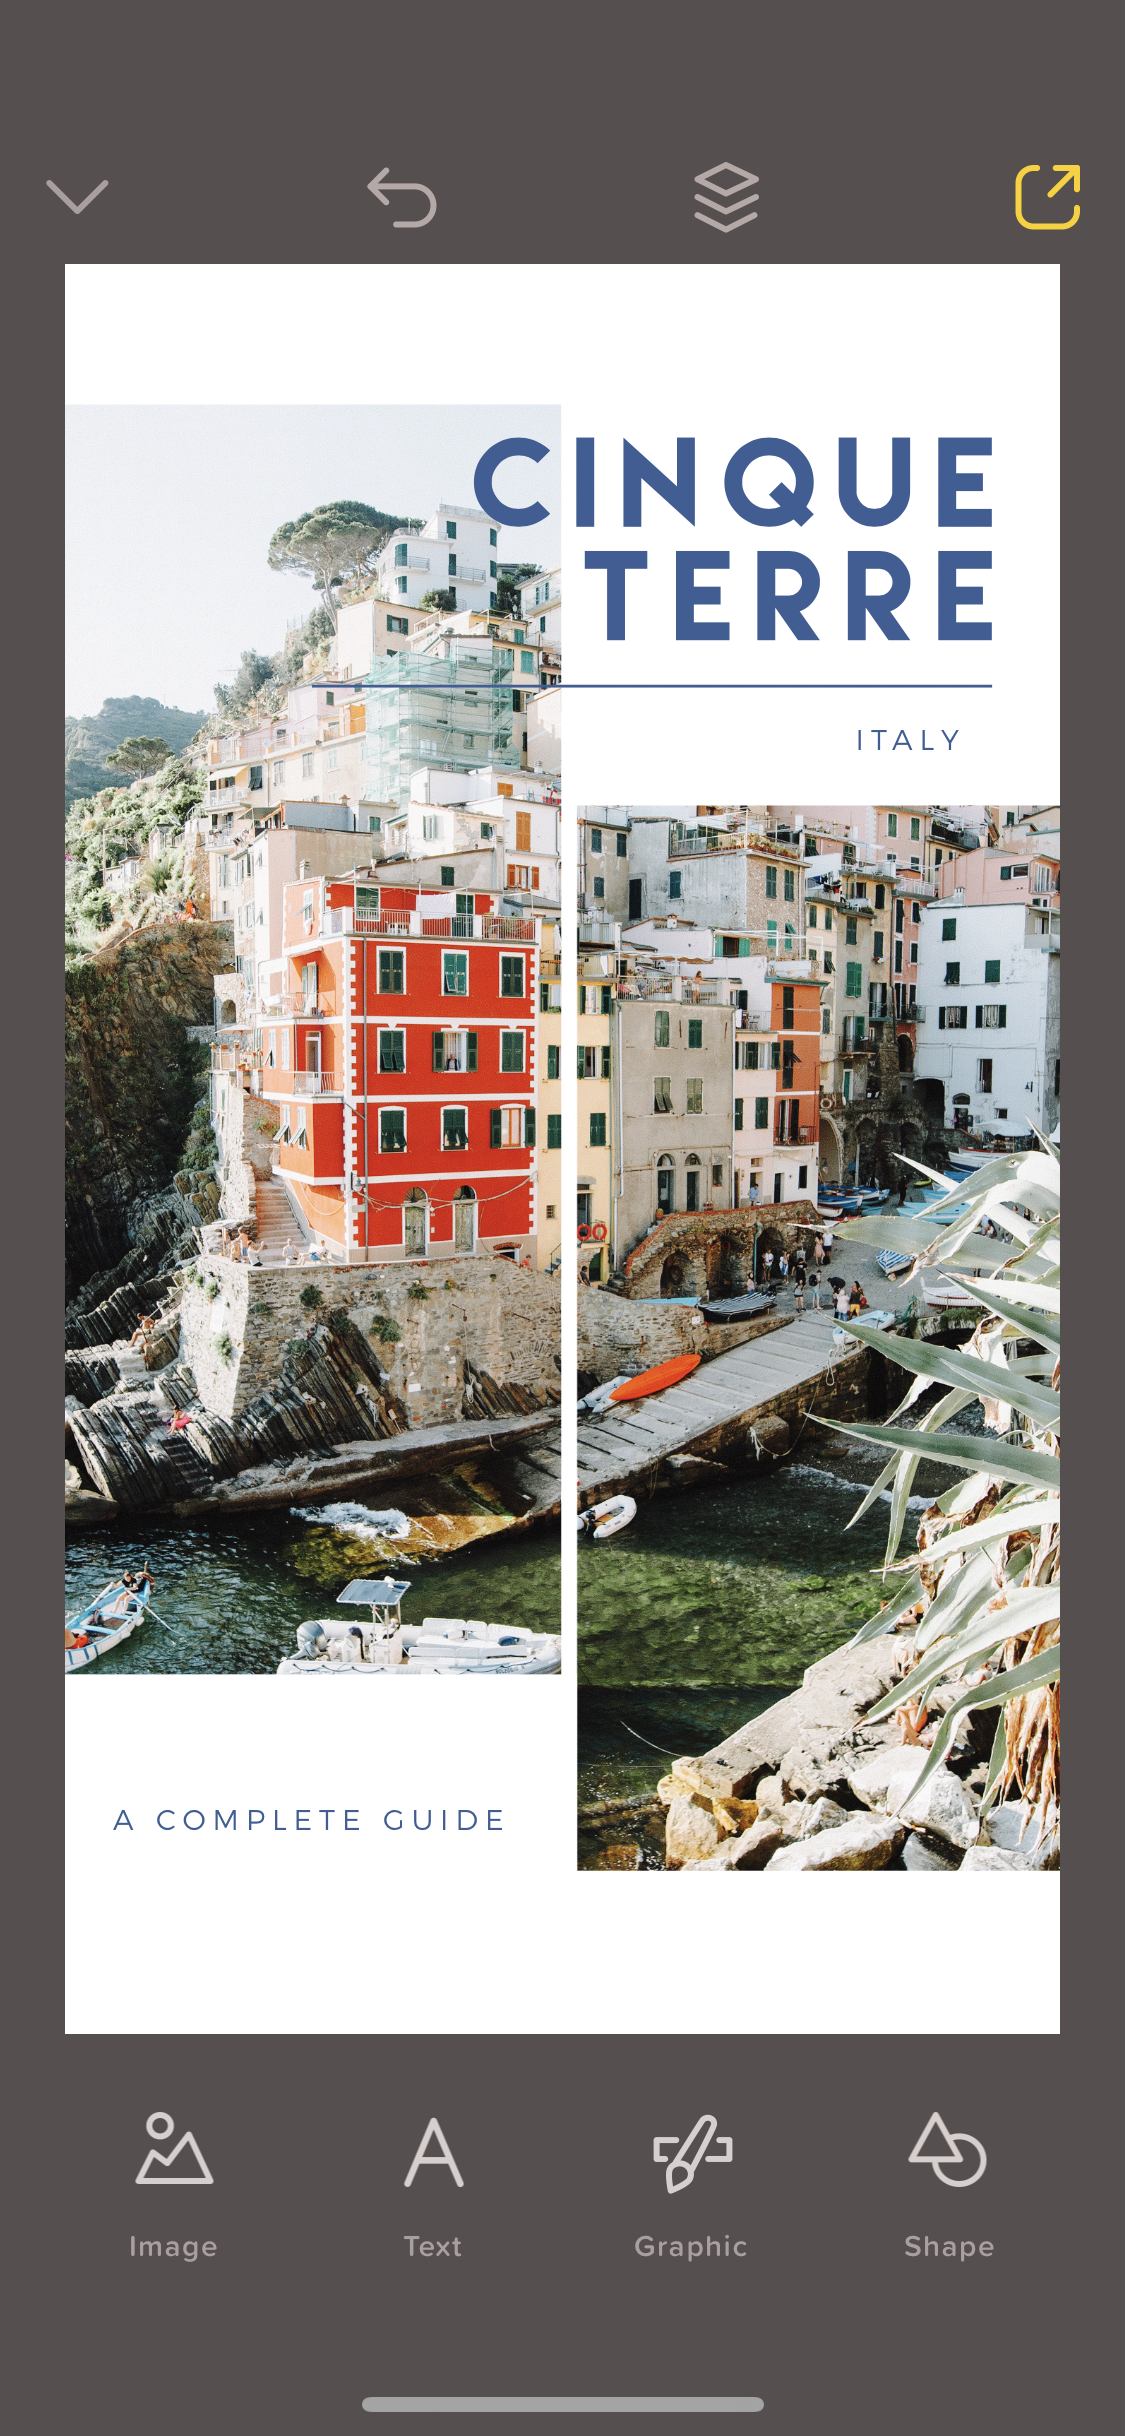 7 Apps To Make Beautiful Instagram Stories   alexandra taylor